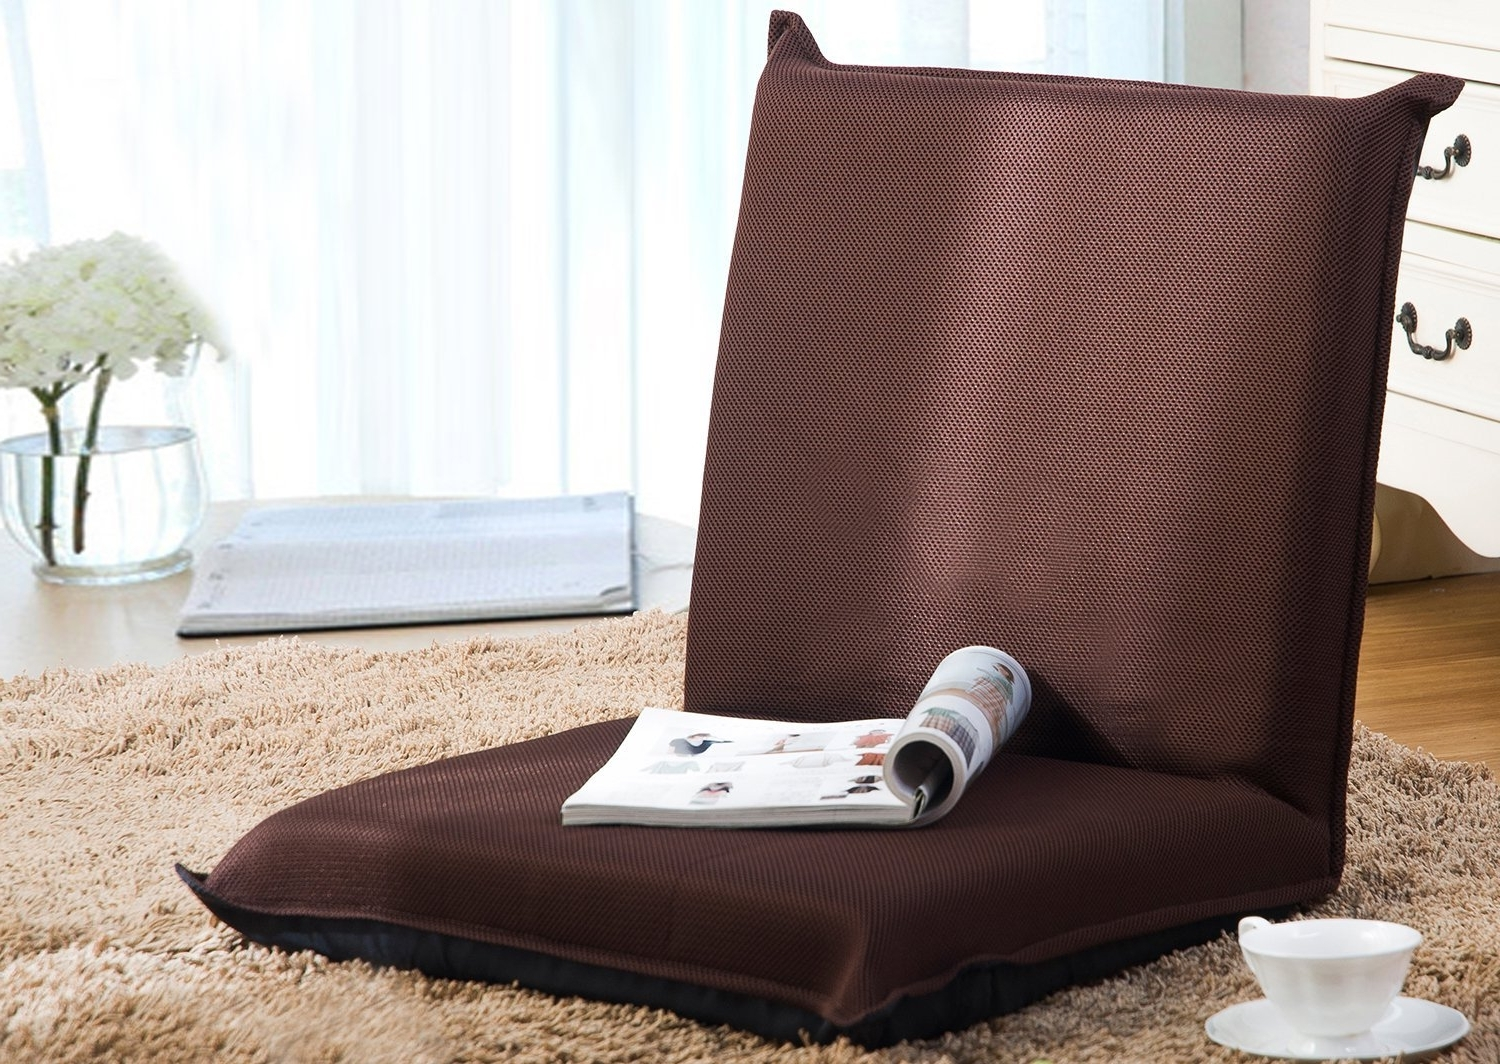 Well Known Lazy Sofa Chairs With Regard To Amazon: Merax Floor Chair Lazy Man Sofa Chair Home Essential (View 14 of 15)